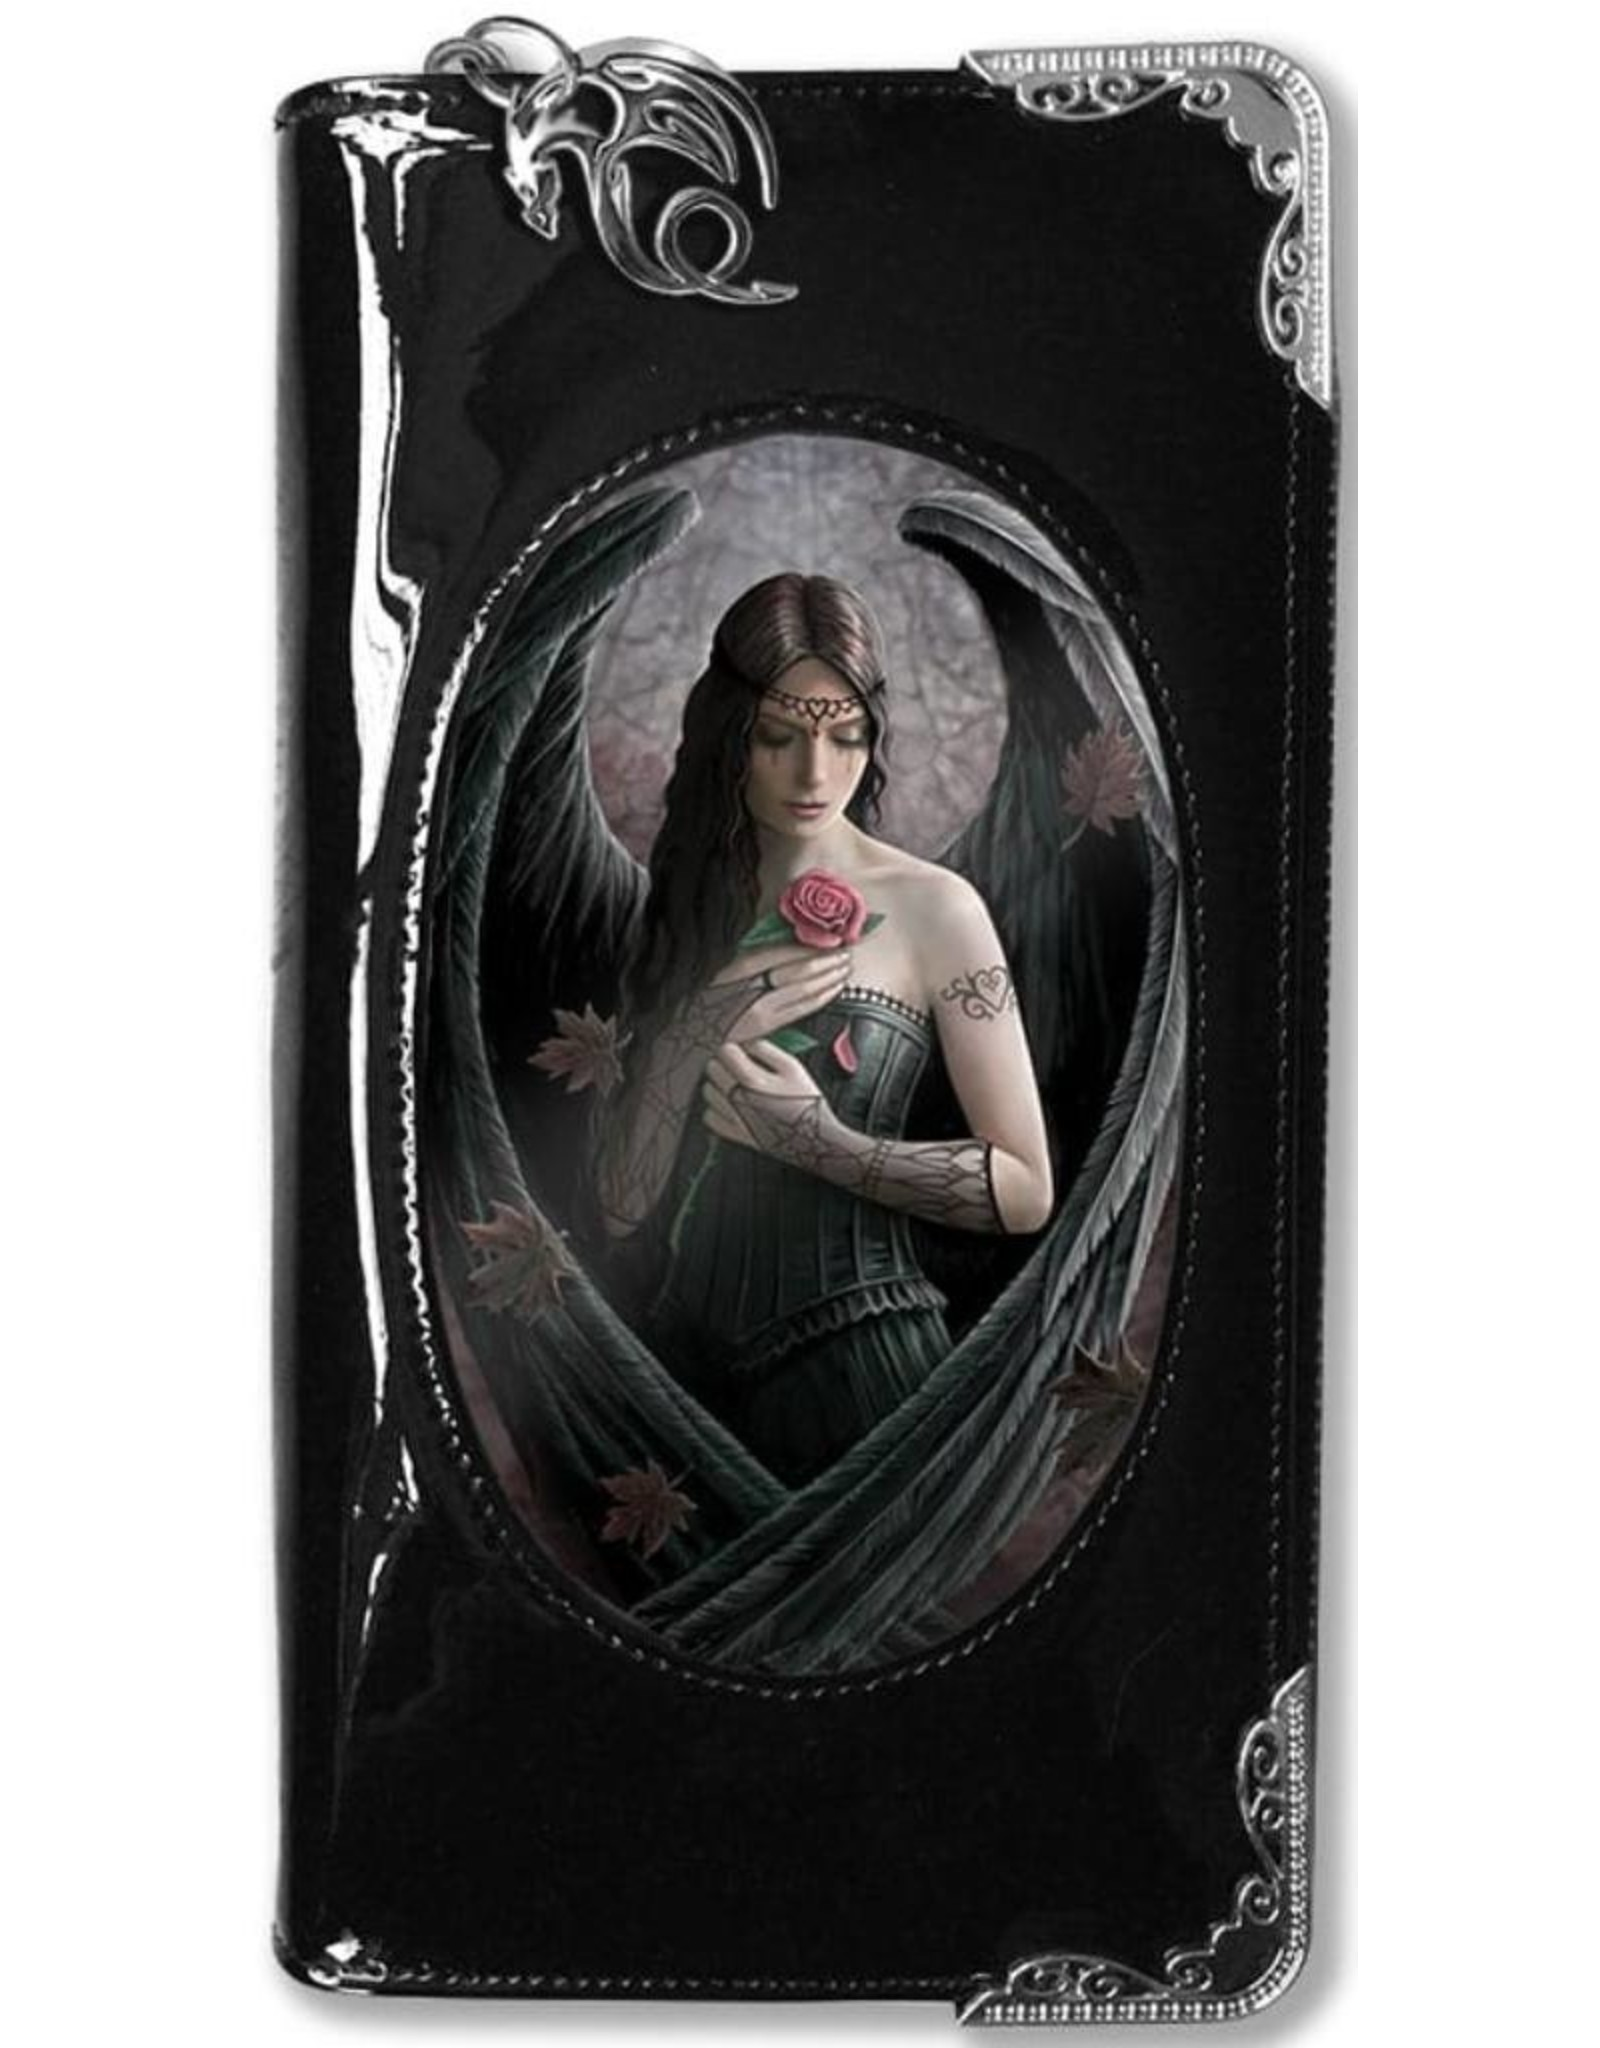 Anne Stokes Gothic wallets and purses - Anne Stokes 3D lenticular purse Angel Rose